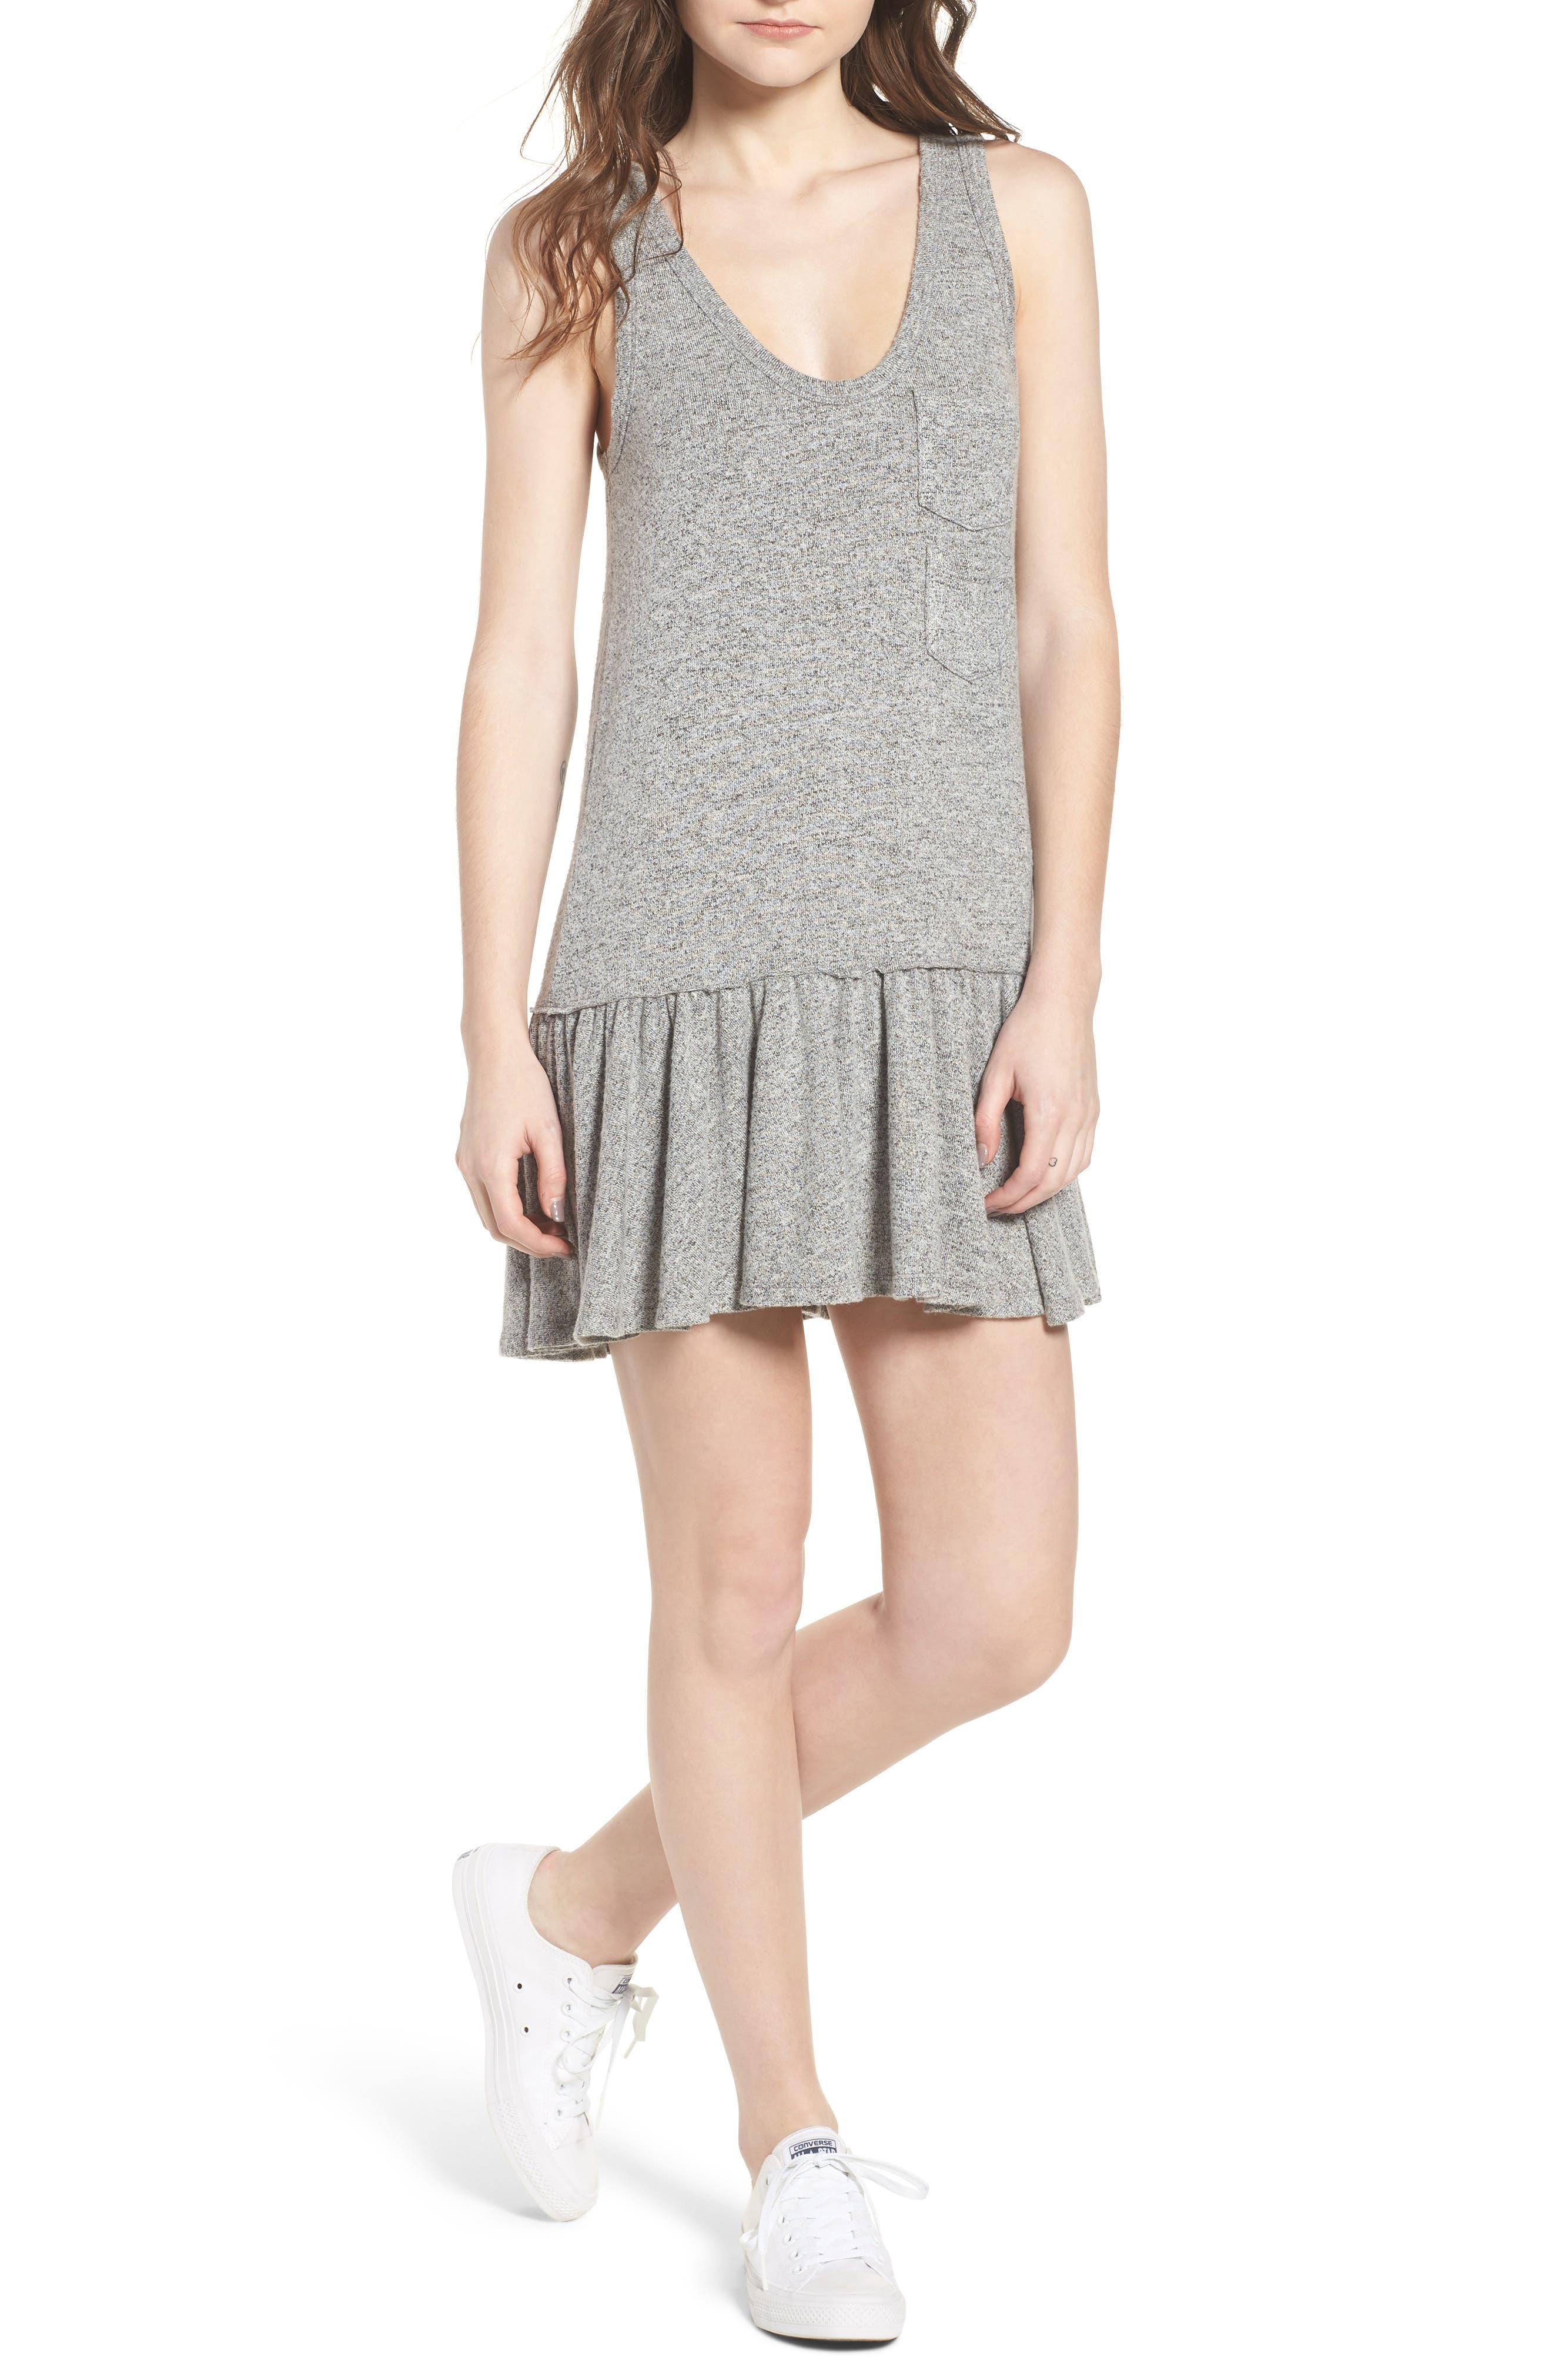 Summer in the City Tank Dress,                         Main,                         color,